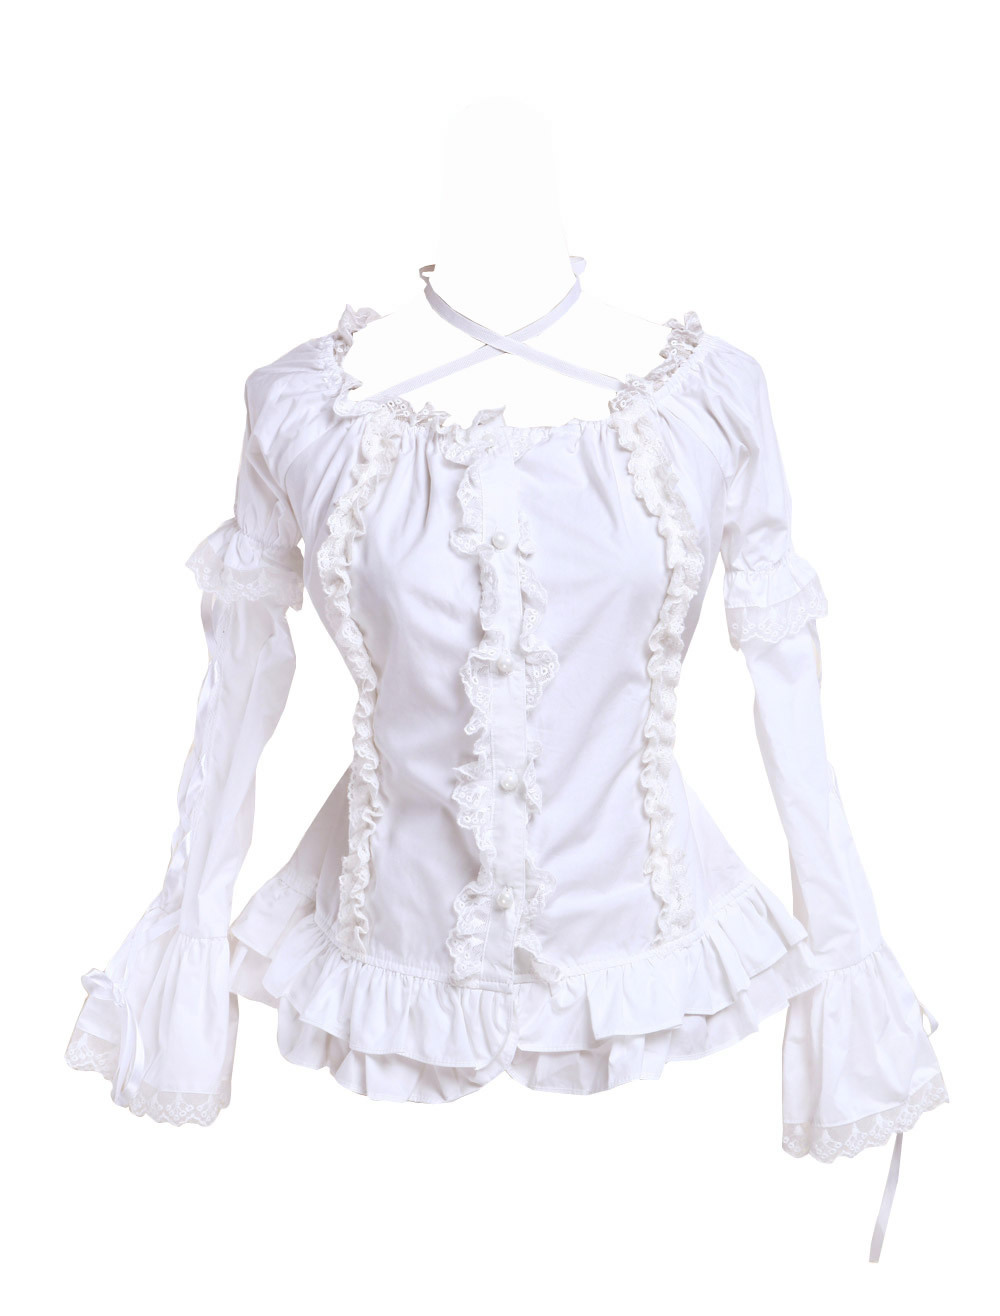 Primary image for White Cotton Low Collar Lace Ruffle Retro Victorian Bell Lolita Shirt Blouse